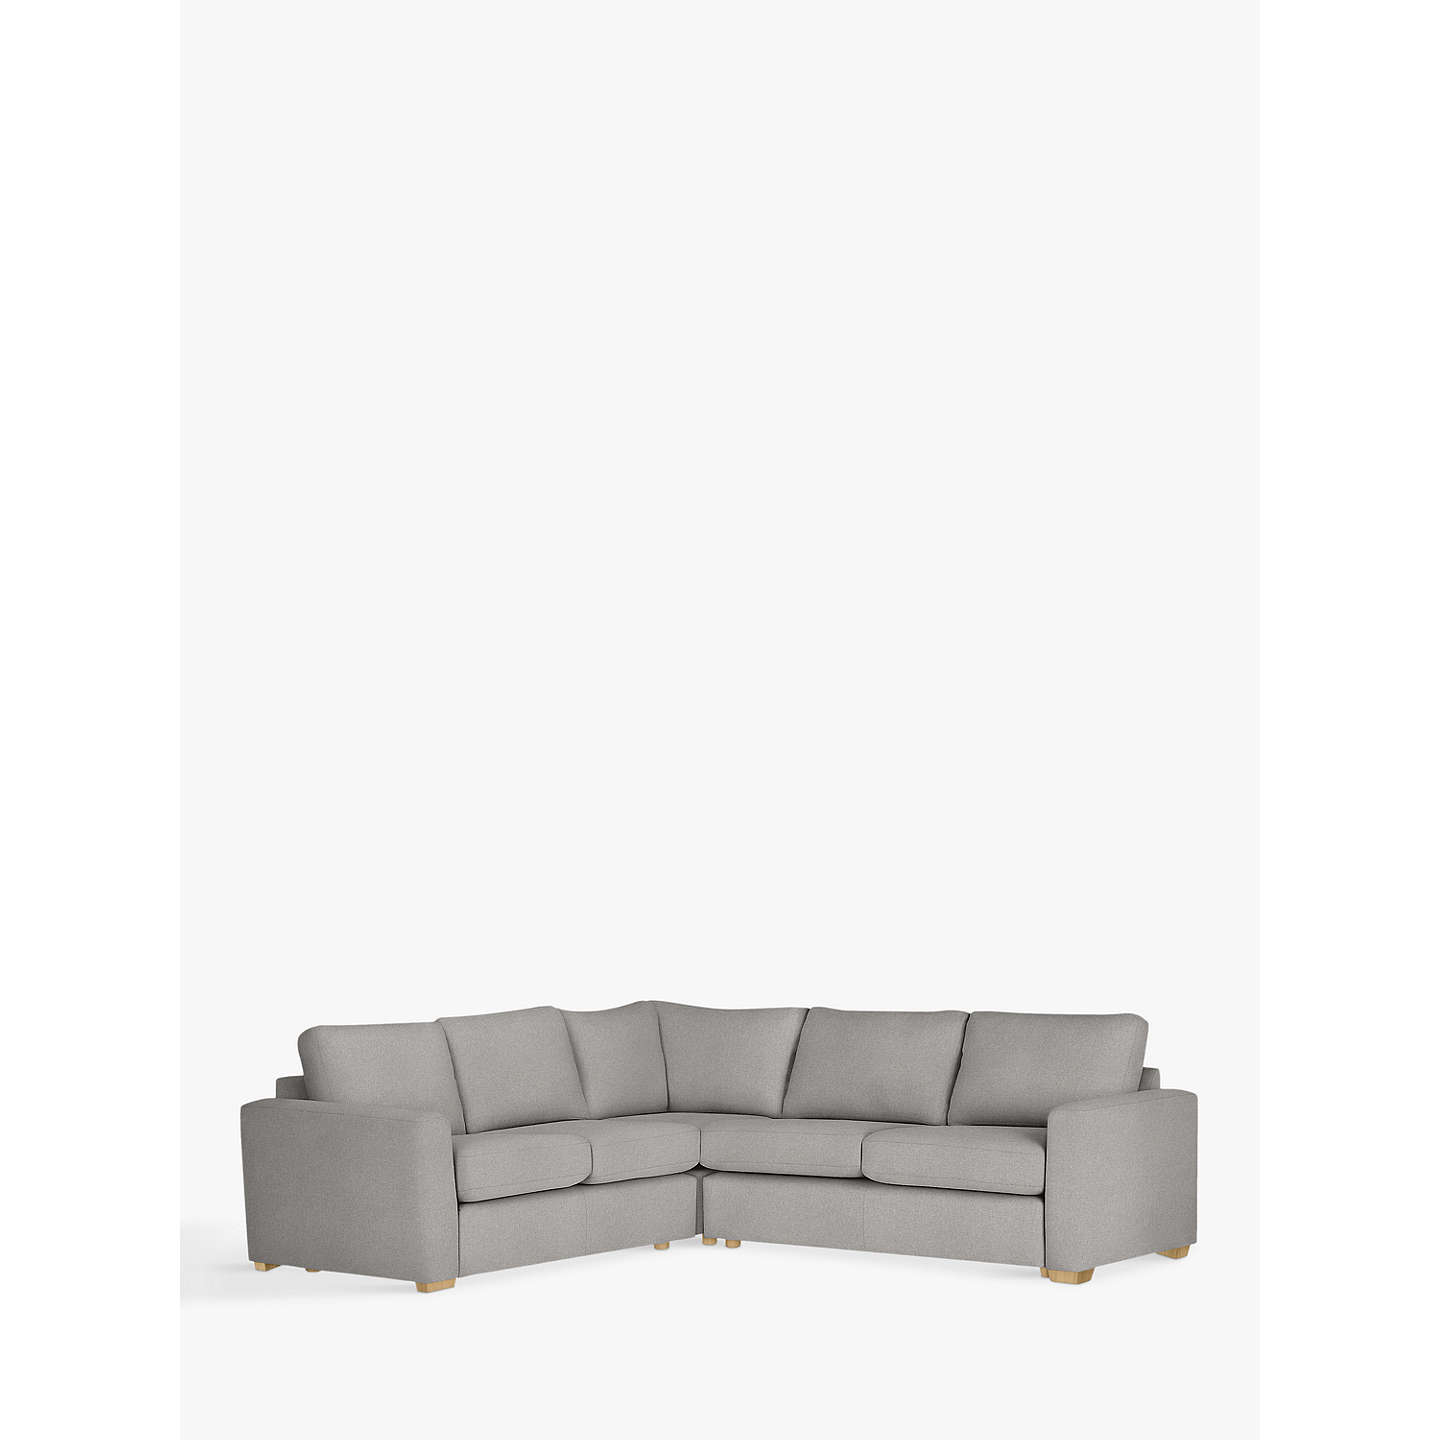 House By John Lewis Oliver Corner Pack Modular Sofa, Light